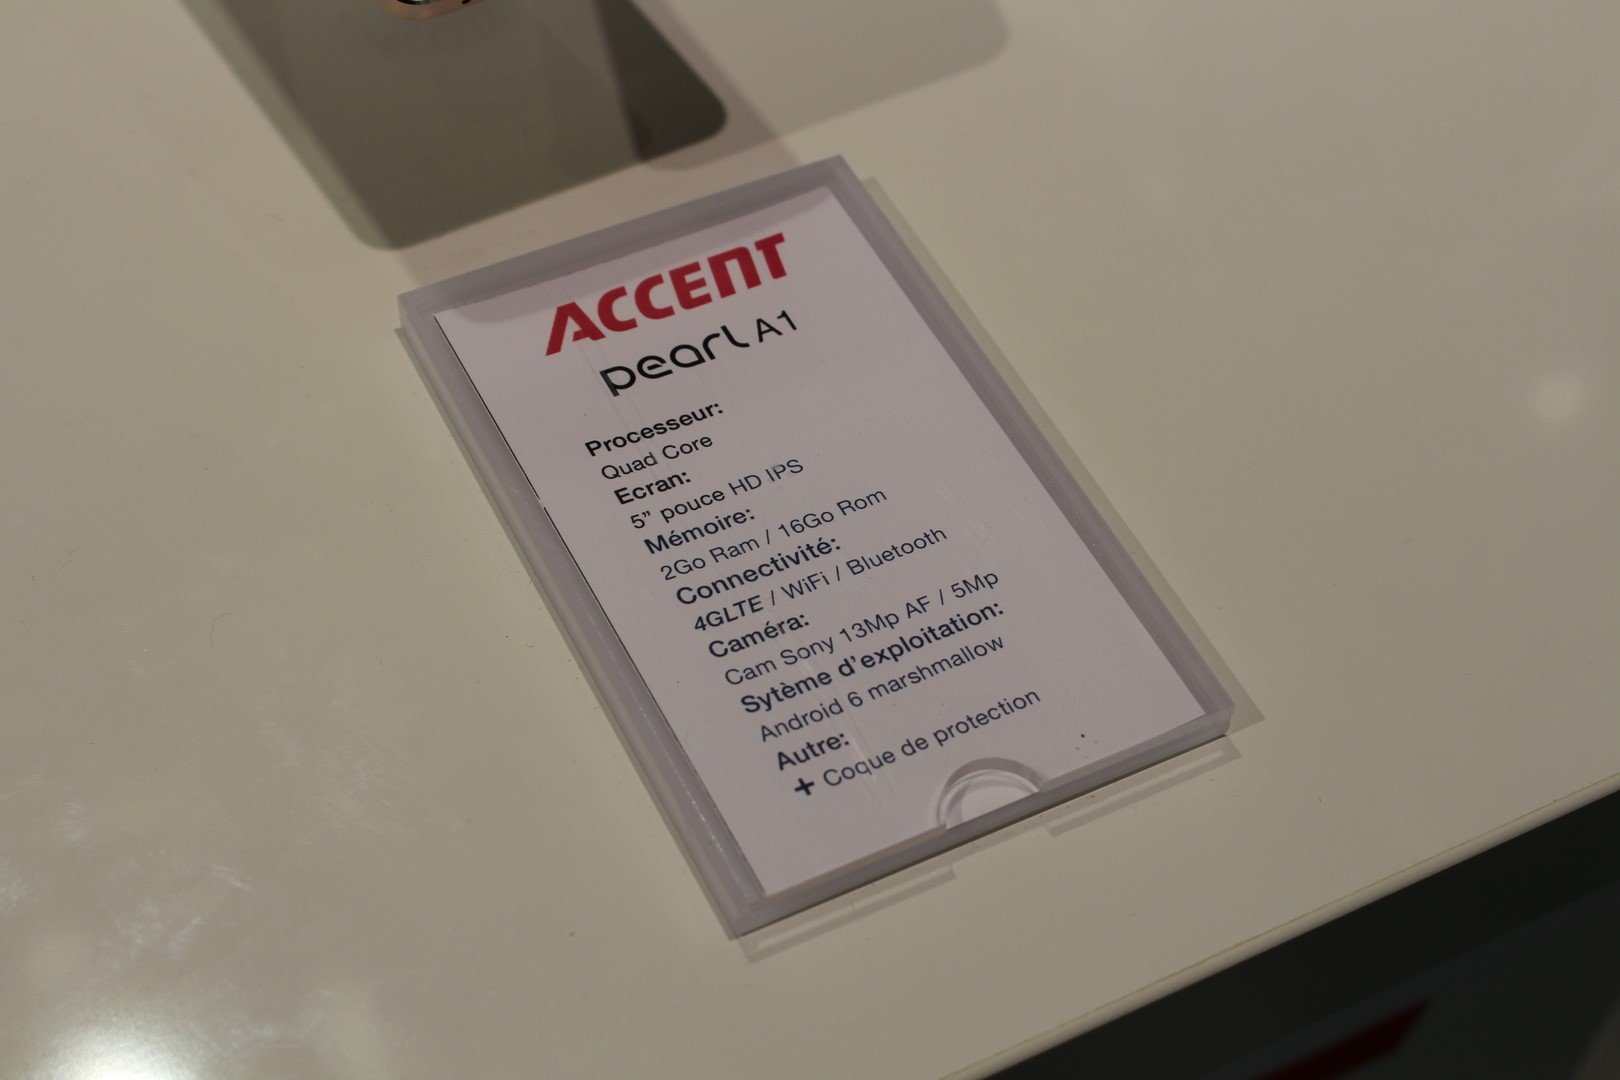 accent-pearl-a1 (1)